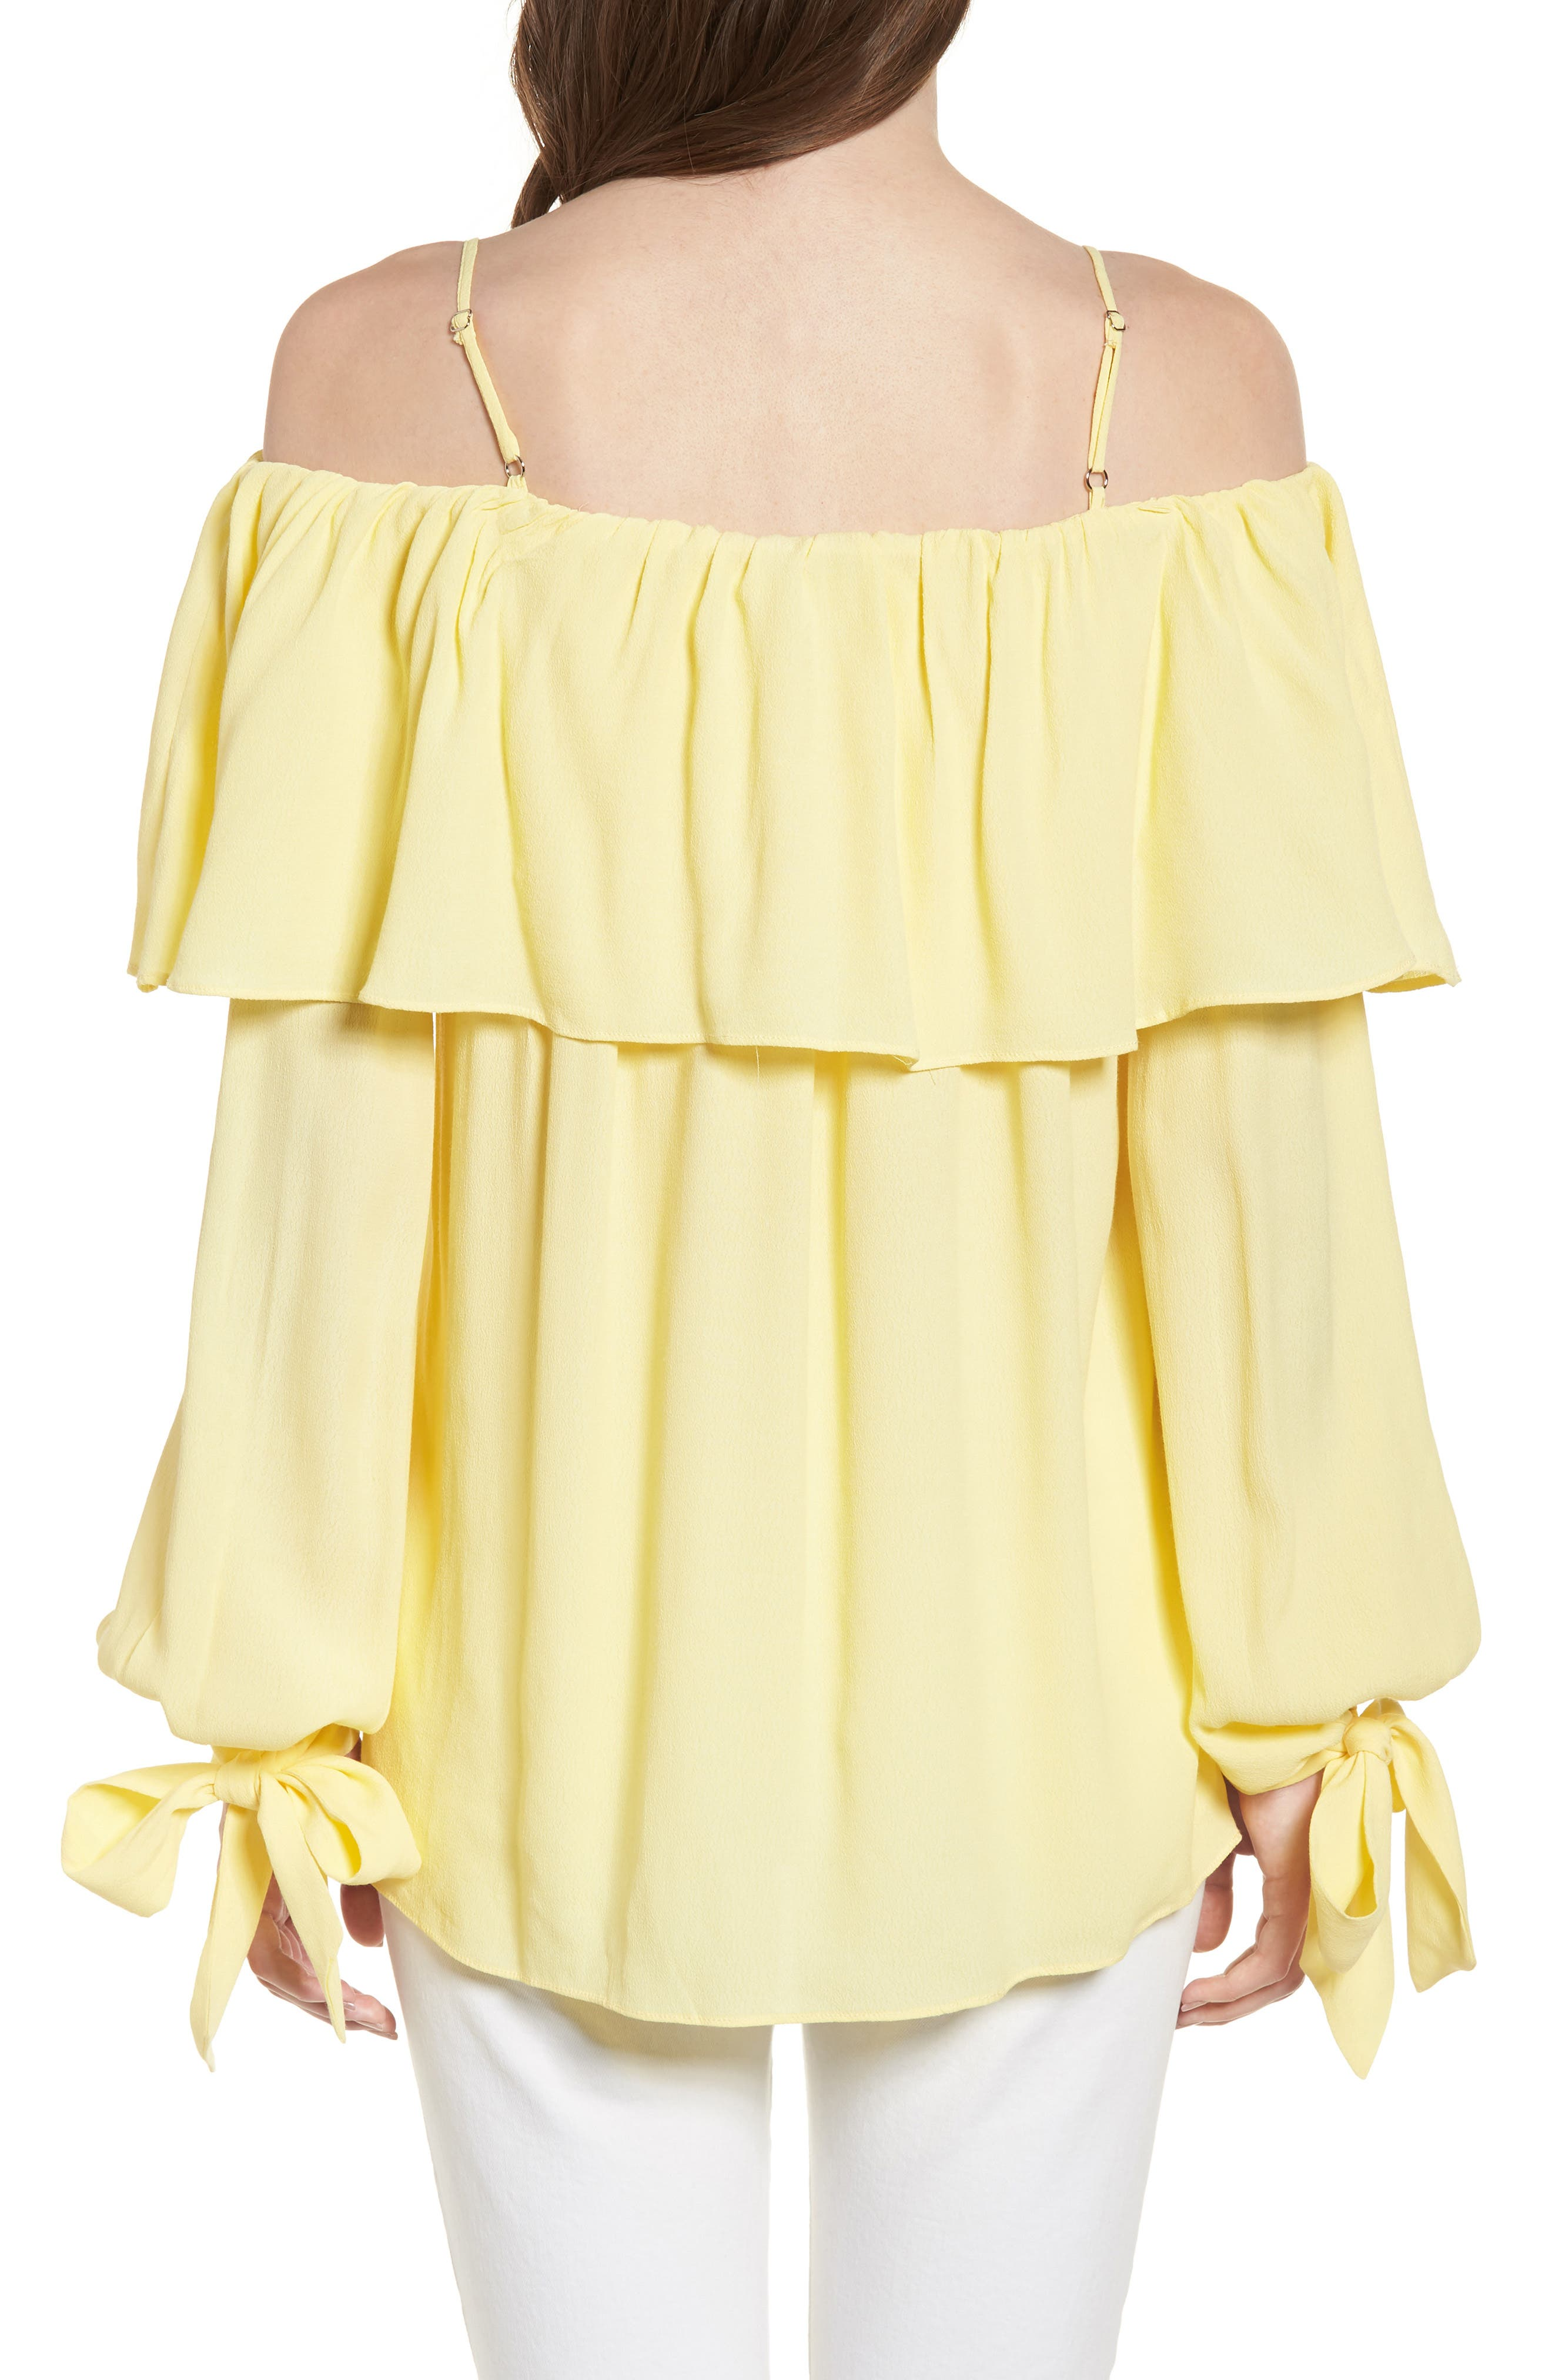 Chorus Off the Shoulder Tie Sleeve Top,                             Alternate thumbnail 2, color,                             700